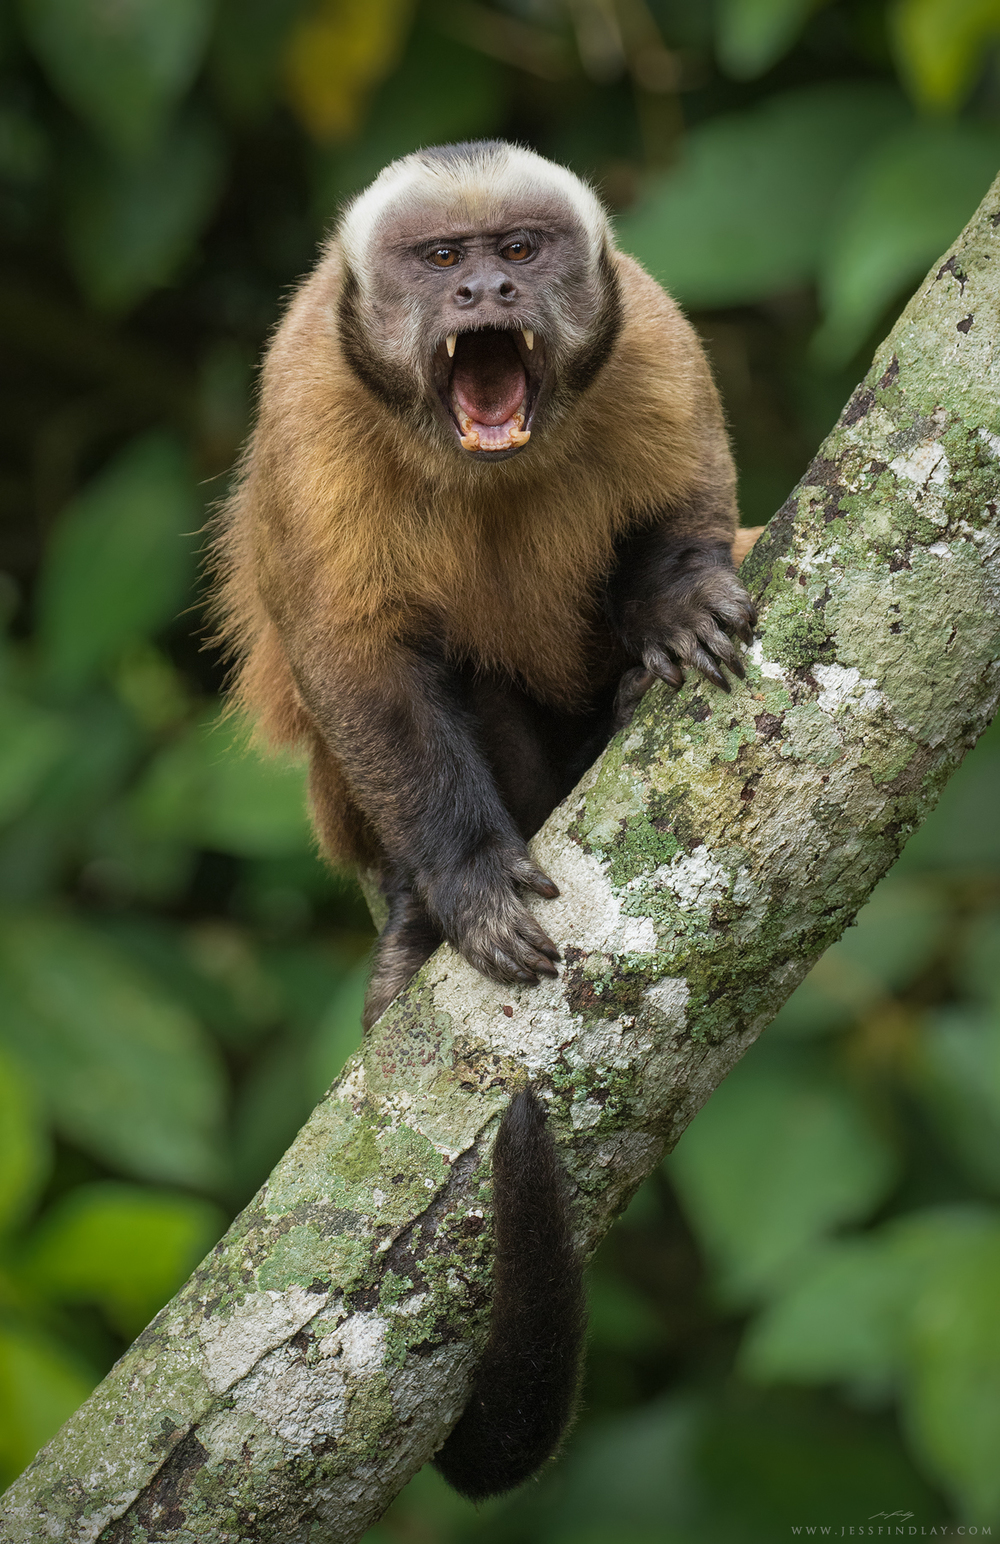 A Tufted Capuchin shows off its impressive canine teeth.